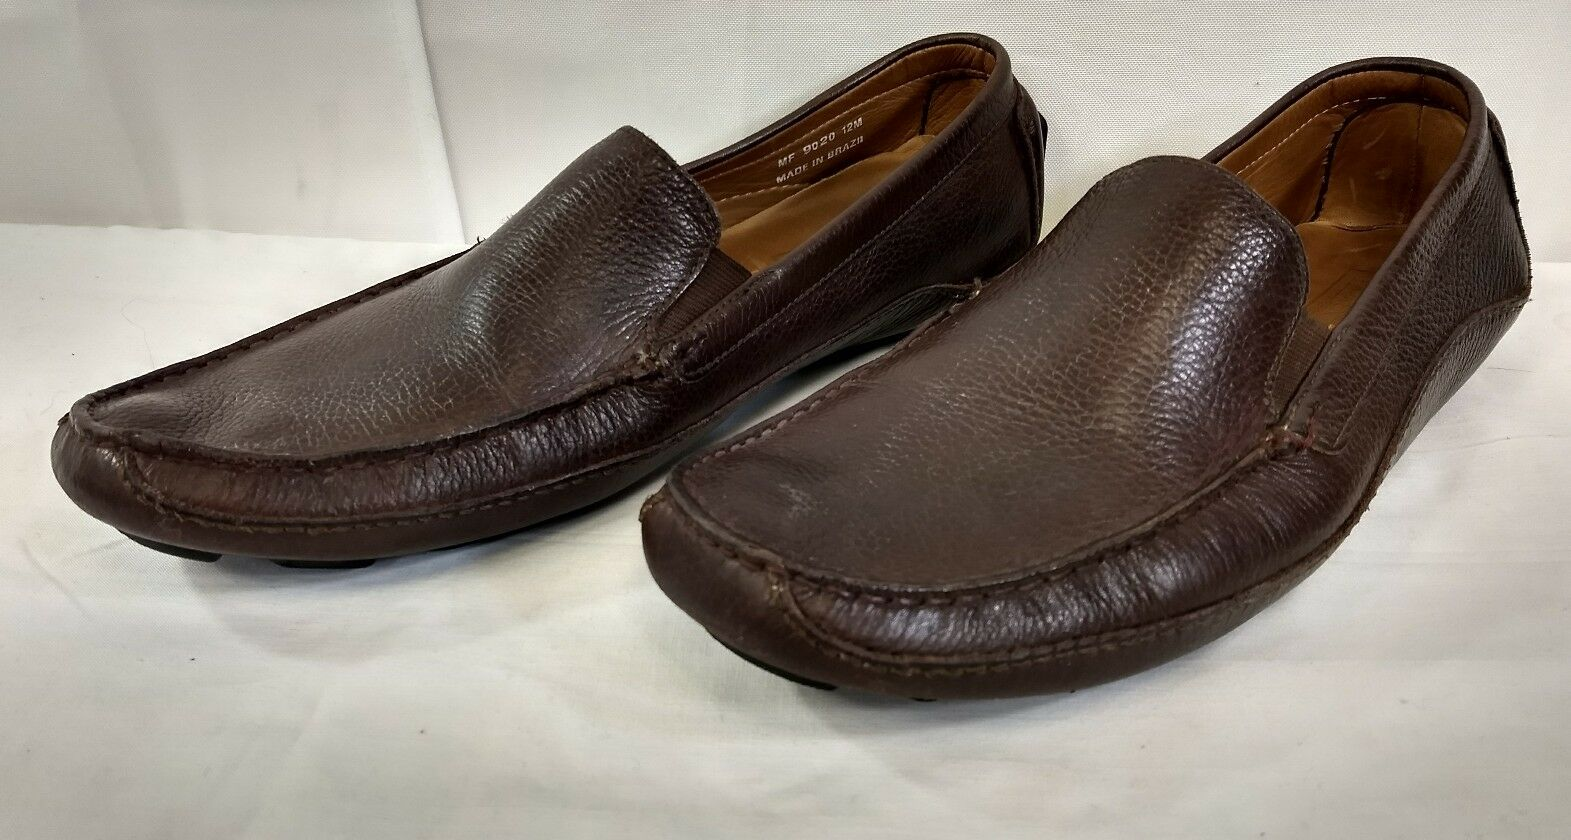 Mercanti Fiorentini Relax Brown Leather Driving Moccasins Loafers Moc Men's 12 M